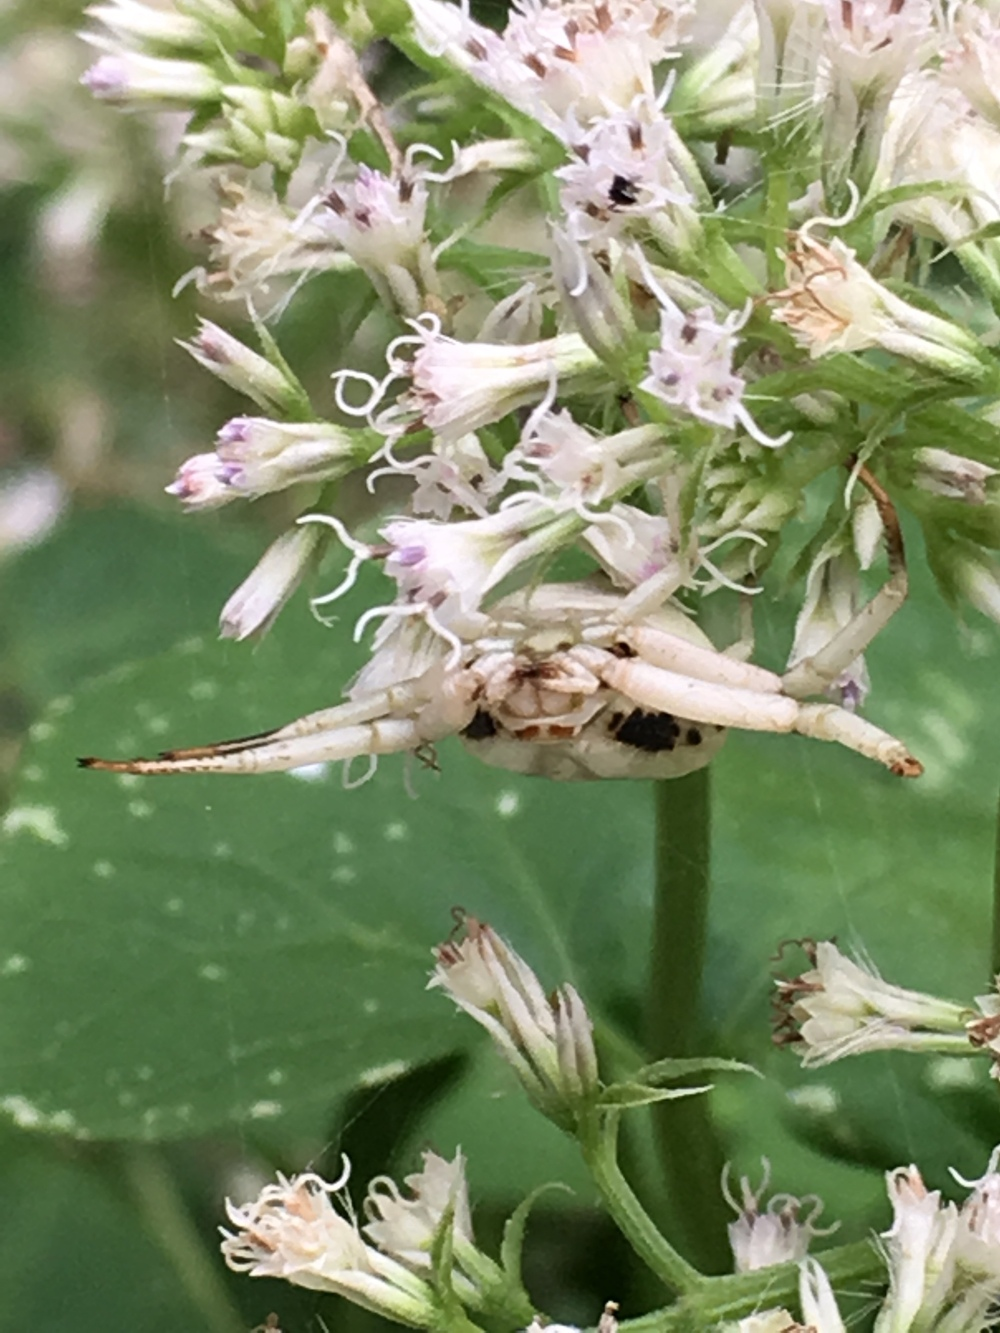 Whitebanded Crab Spider Misumenoides formosipes 2